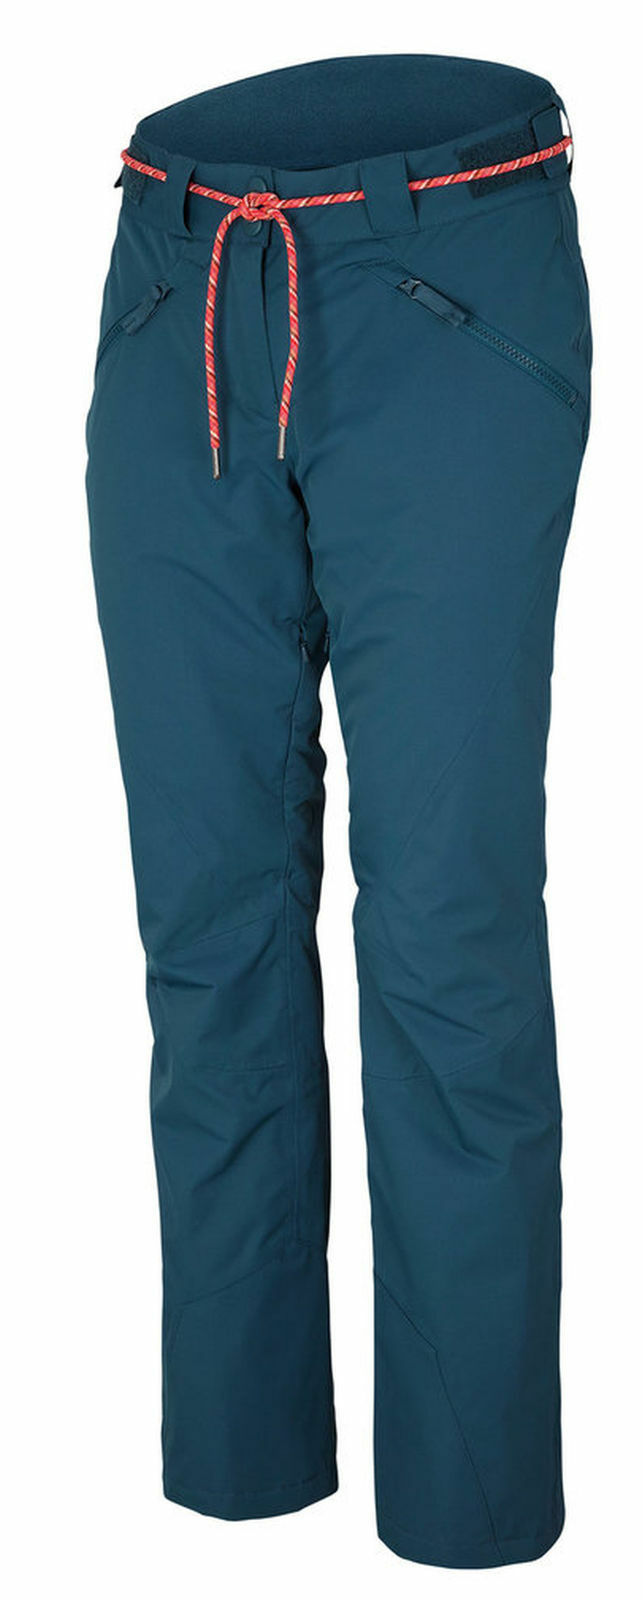 Ziener  Women's Ski Trousers Classic Pants Thorina Lady bluee  hot